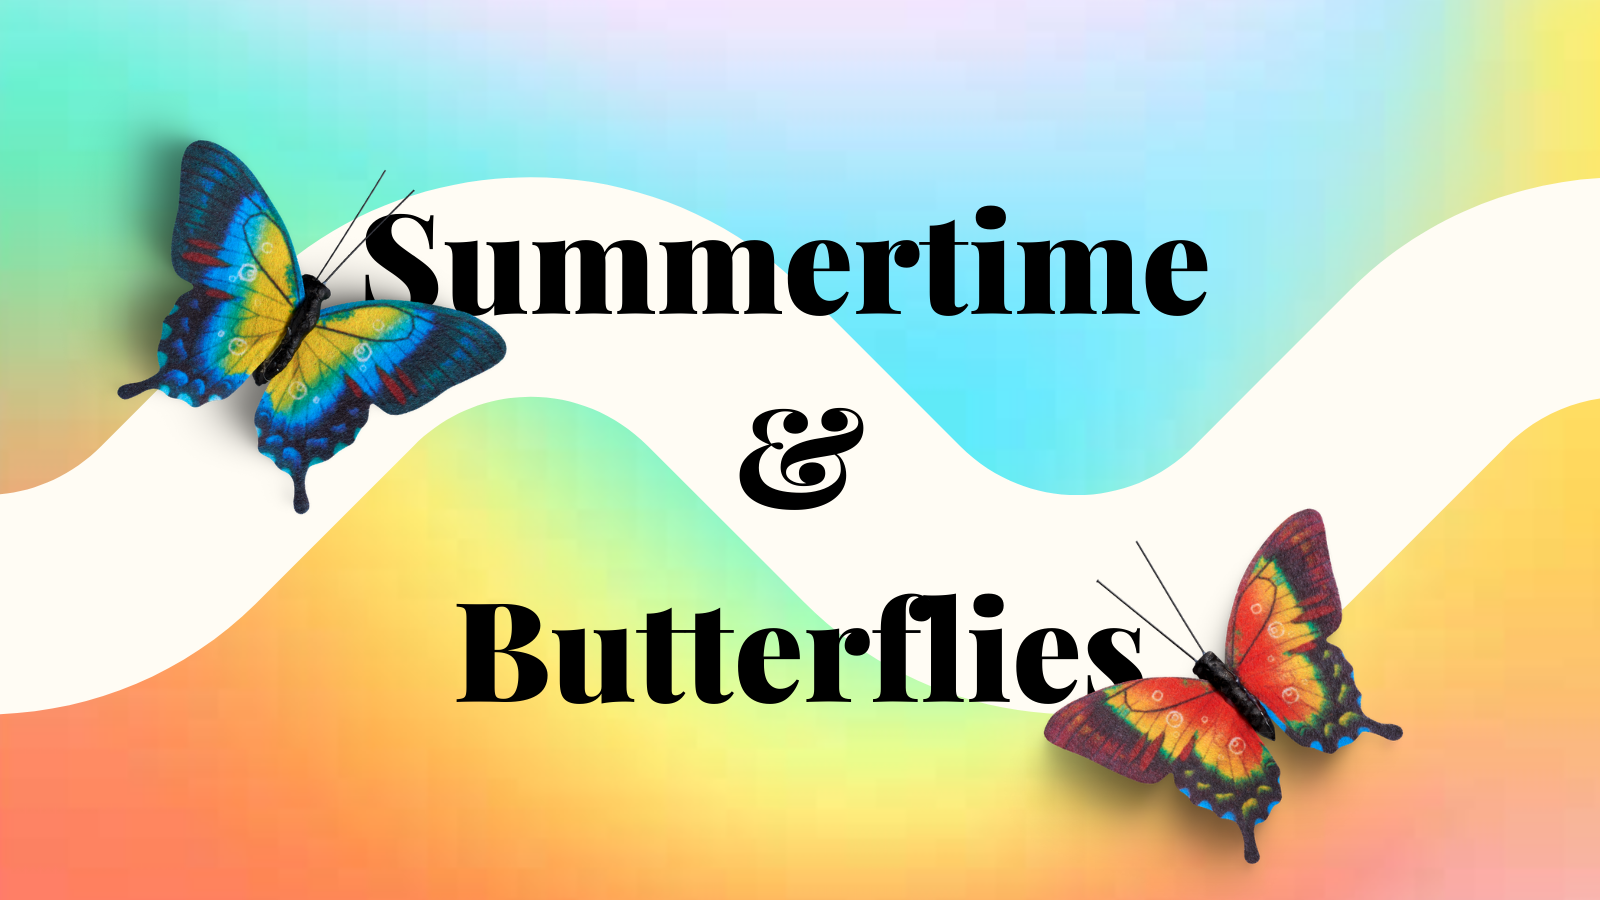 Summertime and Butterflies - Photography Challenge